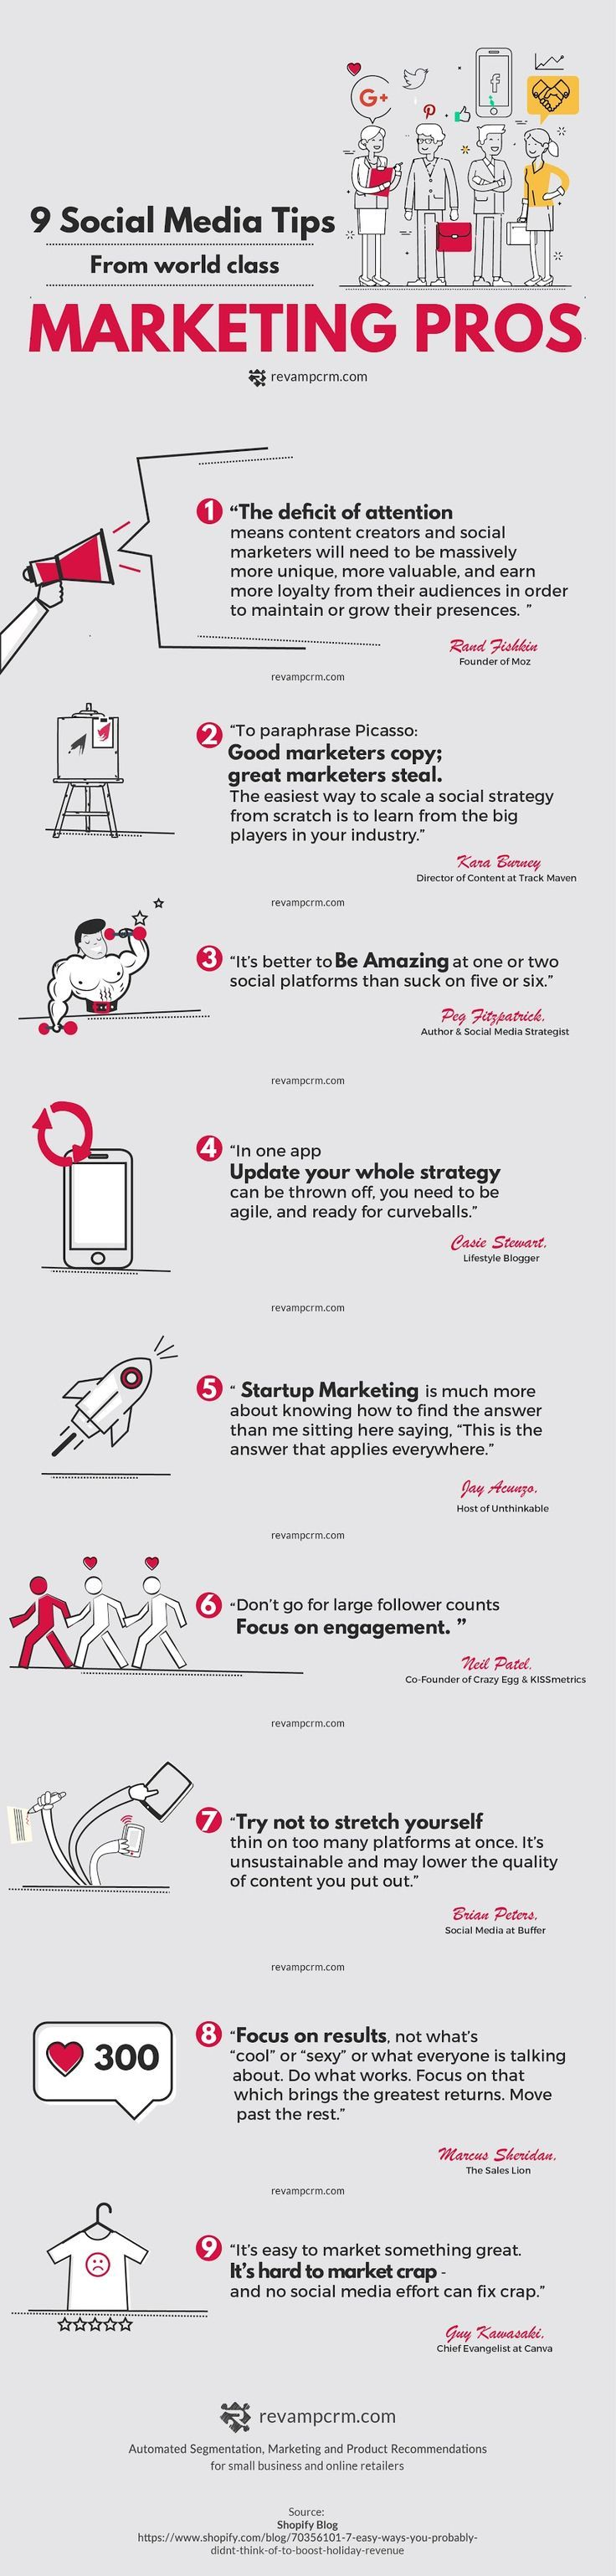 Social Media Marketing Tips From the Pros - infographic